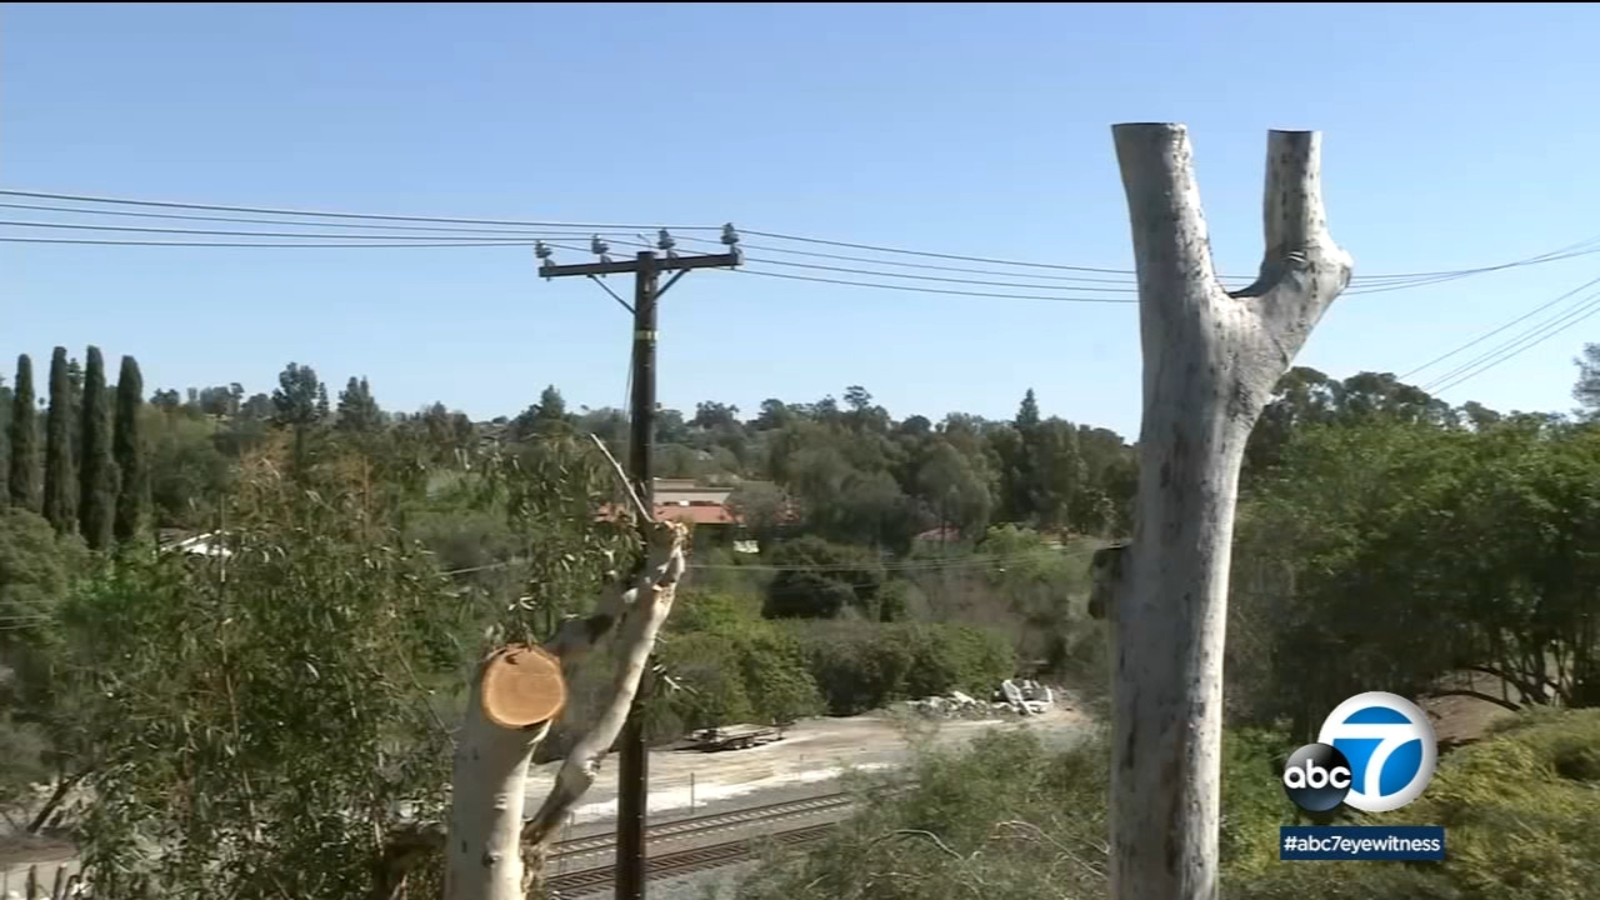 After SoCal Edison trims trees along power lines in Mission Viejo, residents call it excessive